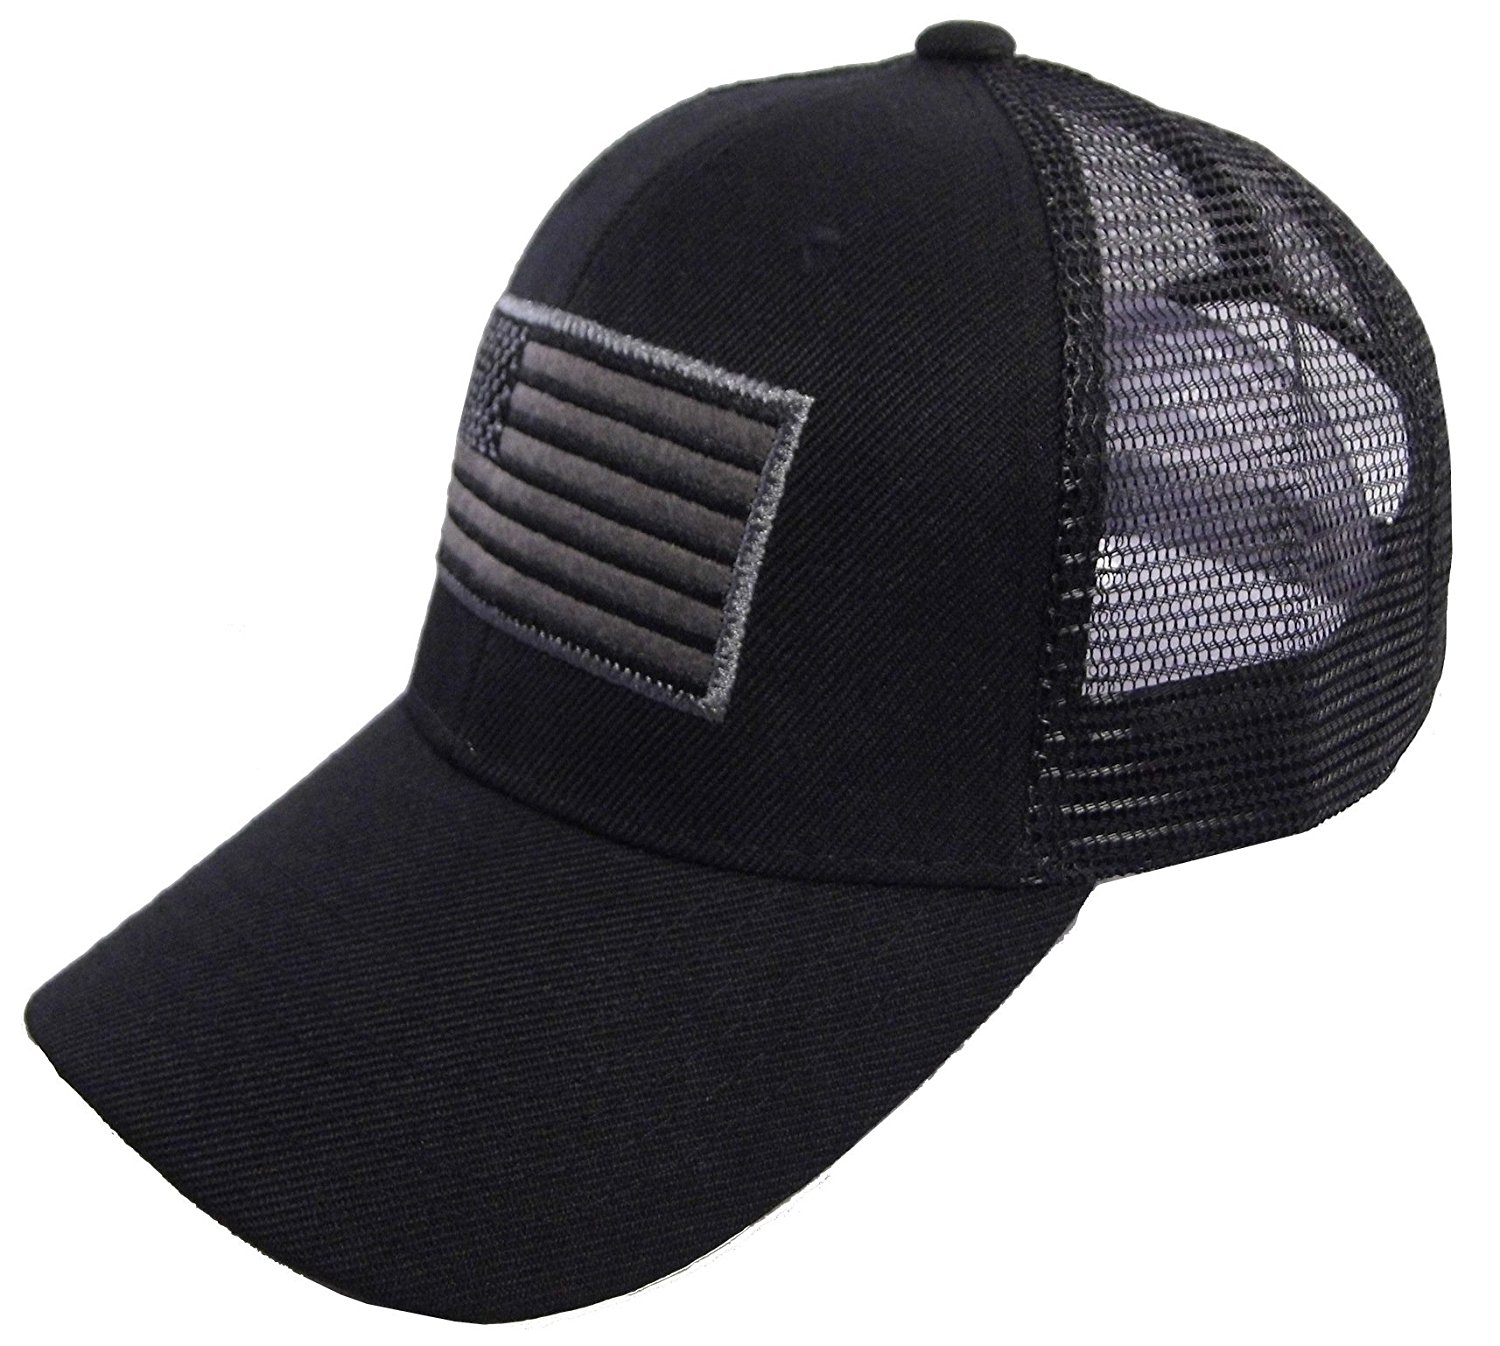 34b1ea6ae47 Get Quotations · US American Flag Patch Tactical Style Mesh Trucker  Baseball Cap Hat